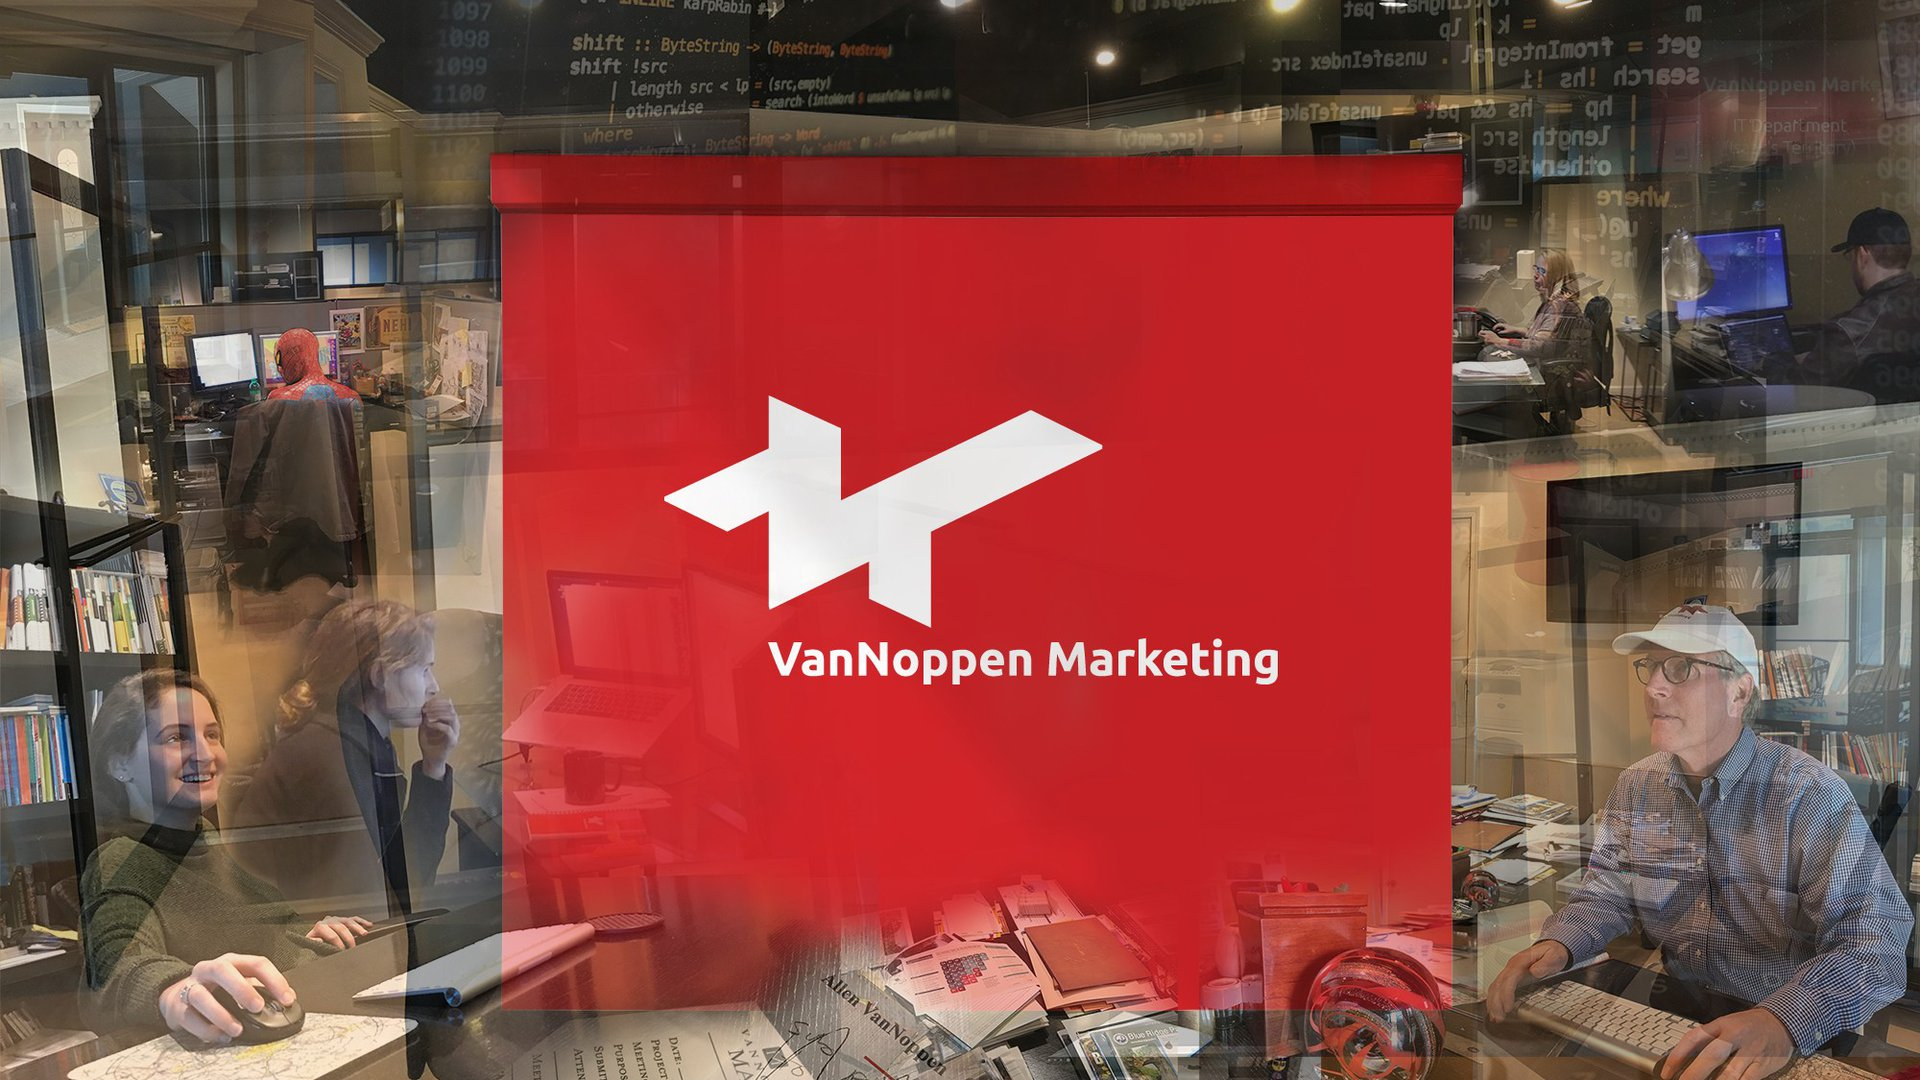 VanNoppen Marketing memoryscape by NVN Memoryscapes